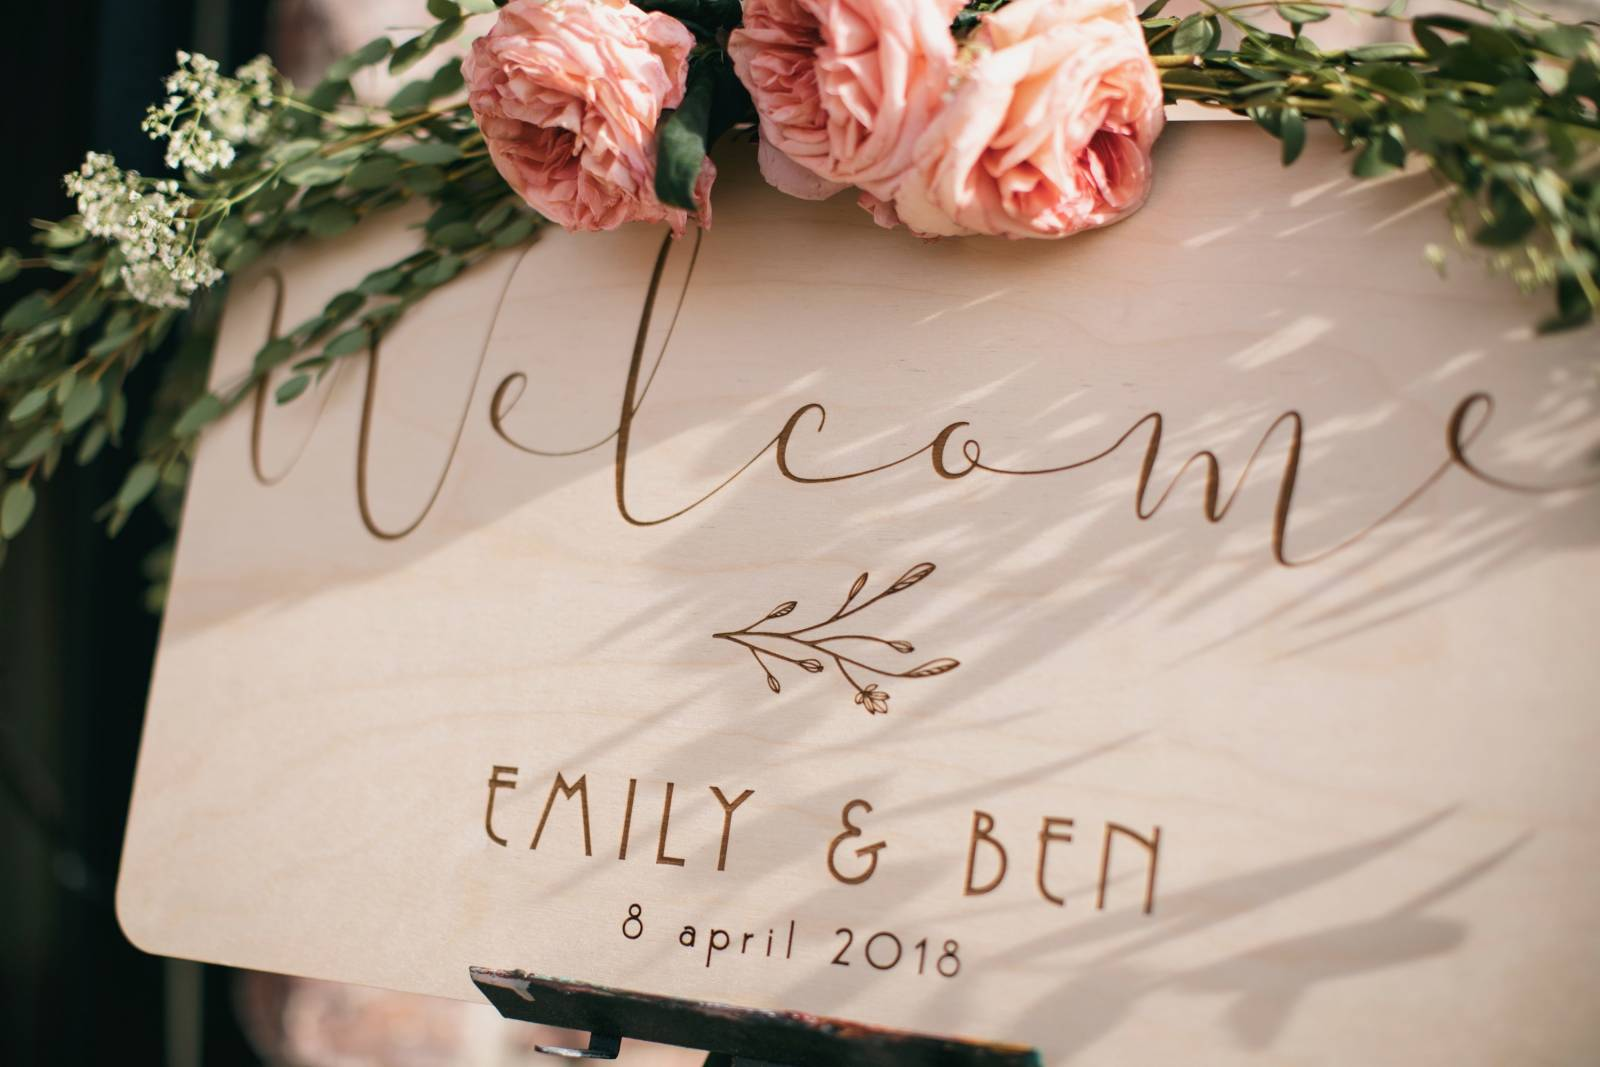 HOSHII - weddingdetails - lasercutting - Decoratie - House of Weddings - 29